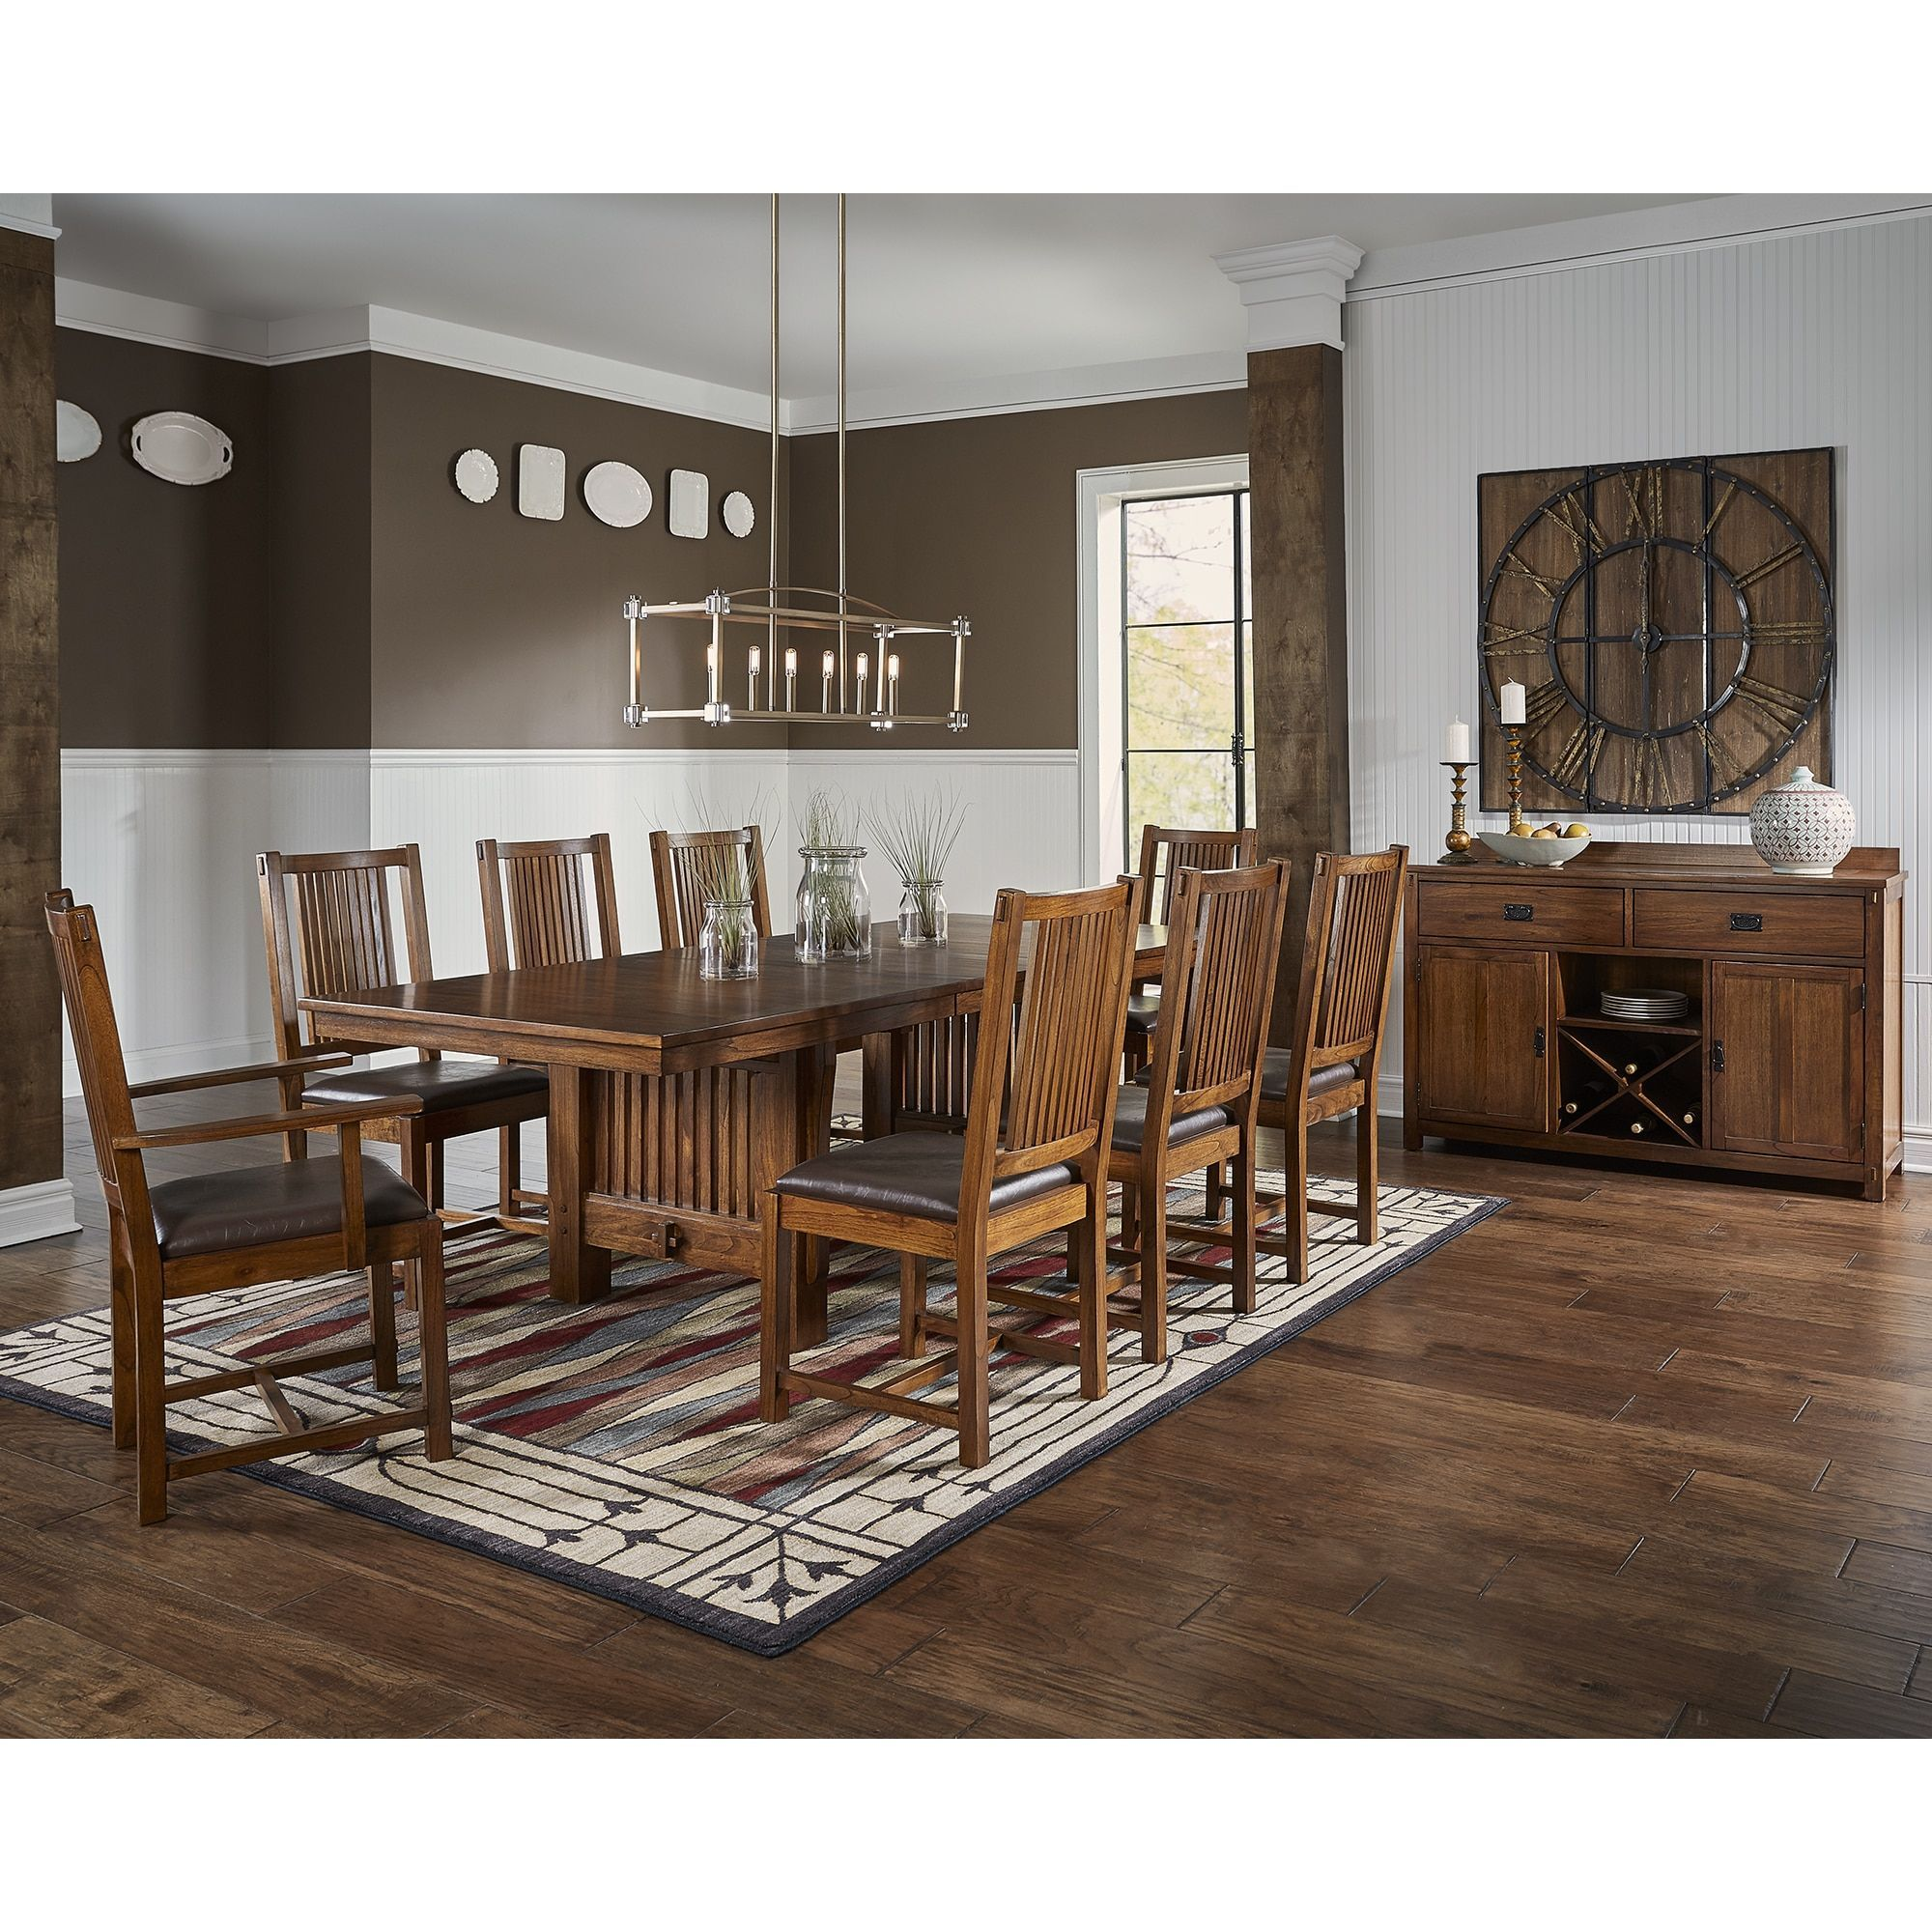 Dining Room Table Size For 10 Awesome Gemma 10Piece Solid Wood Dining Set Gemma 10Pc Solid Wood Dining Decorating Design